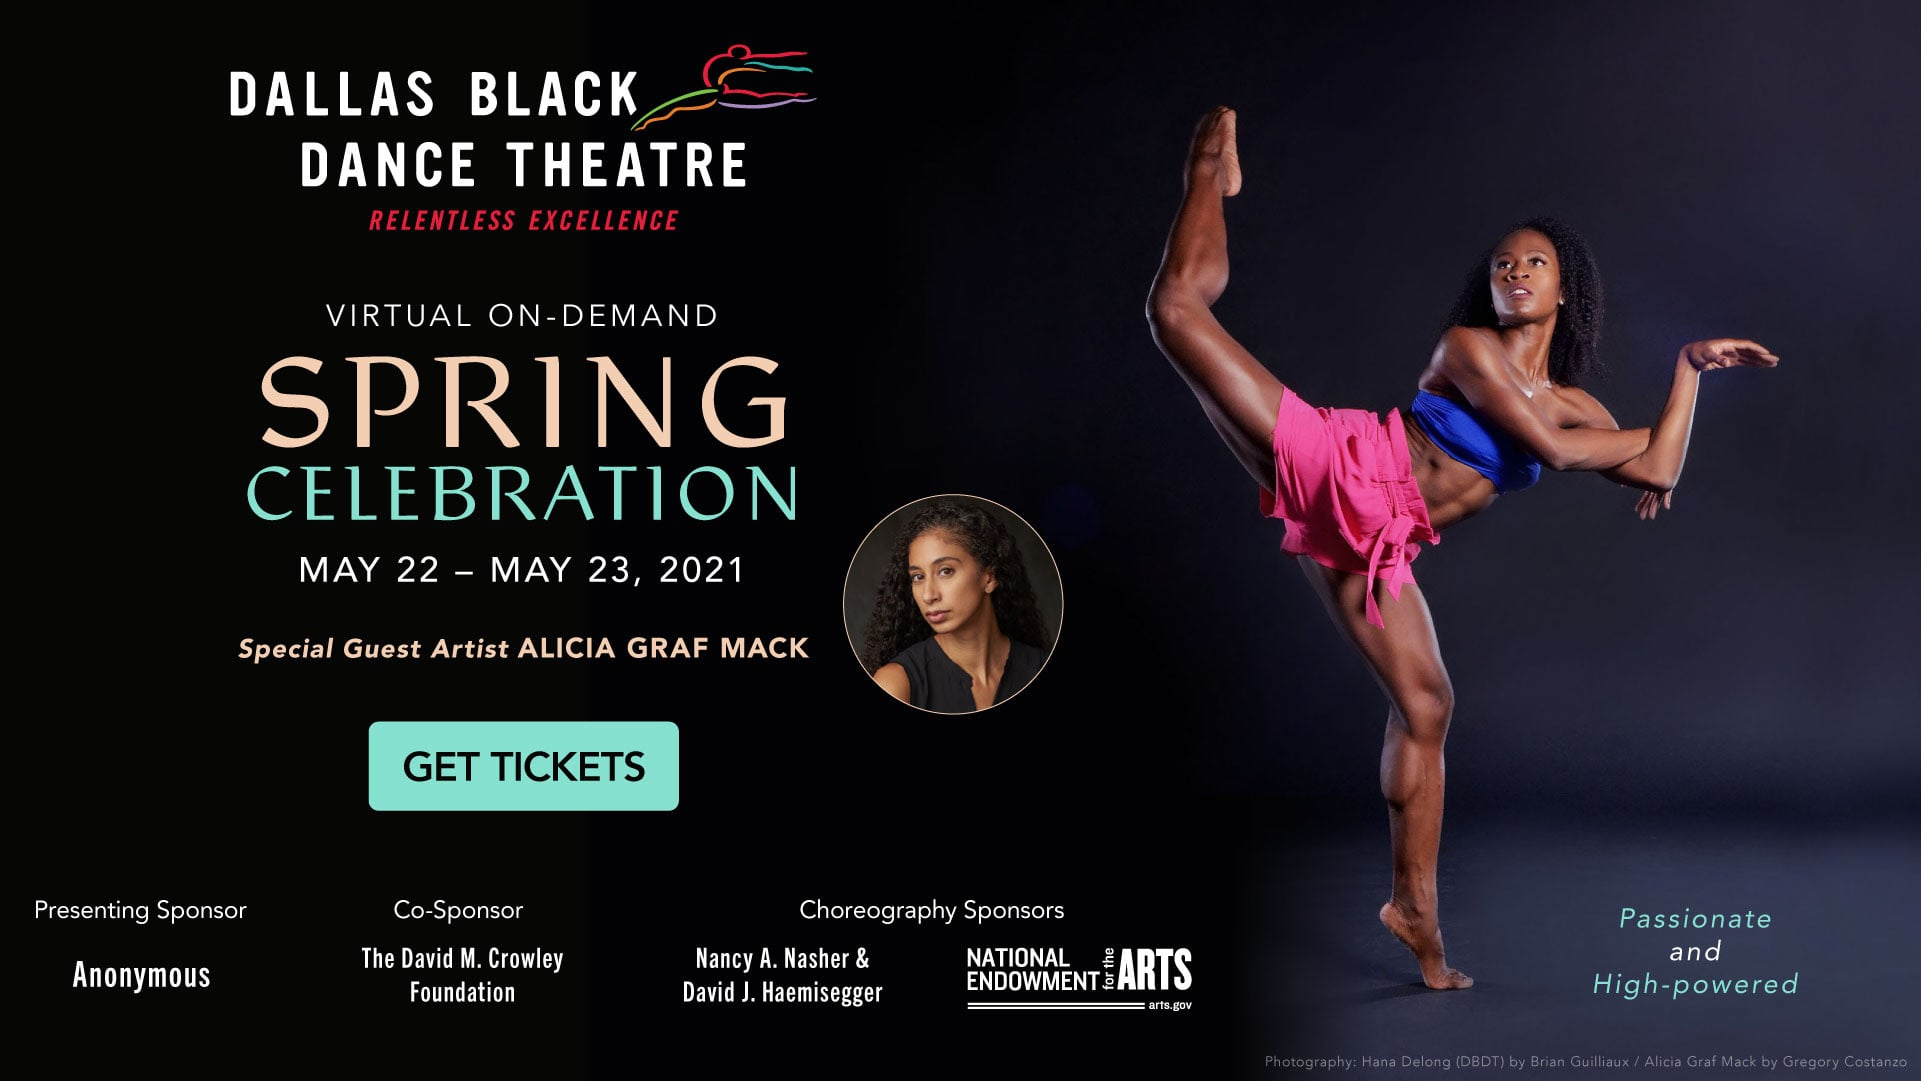 Dallas Black Dance Theatre's Virtual Spring Celebration